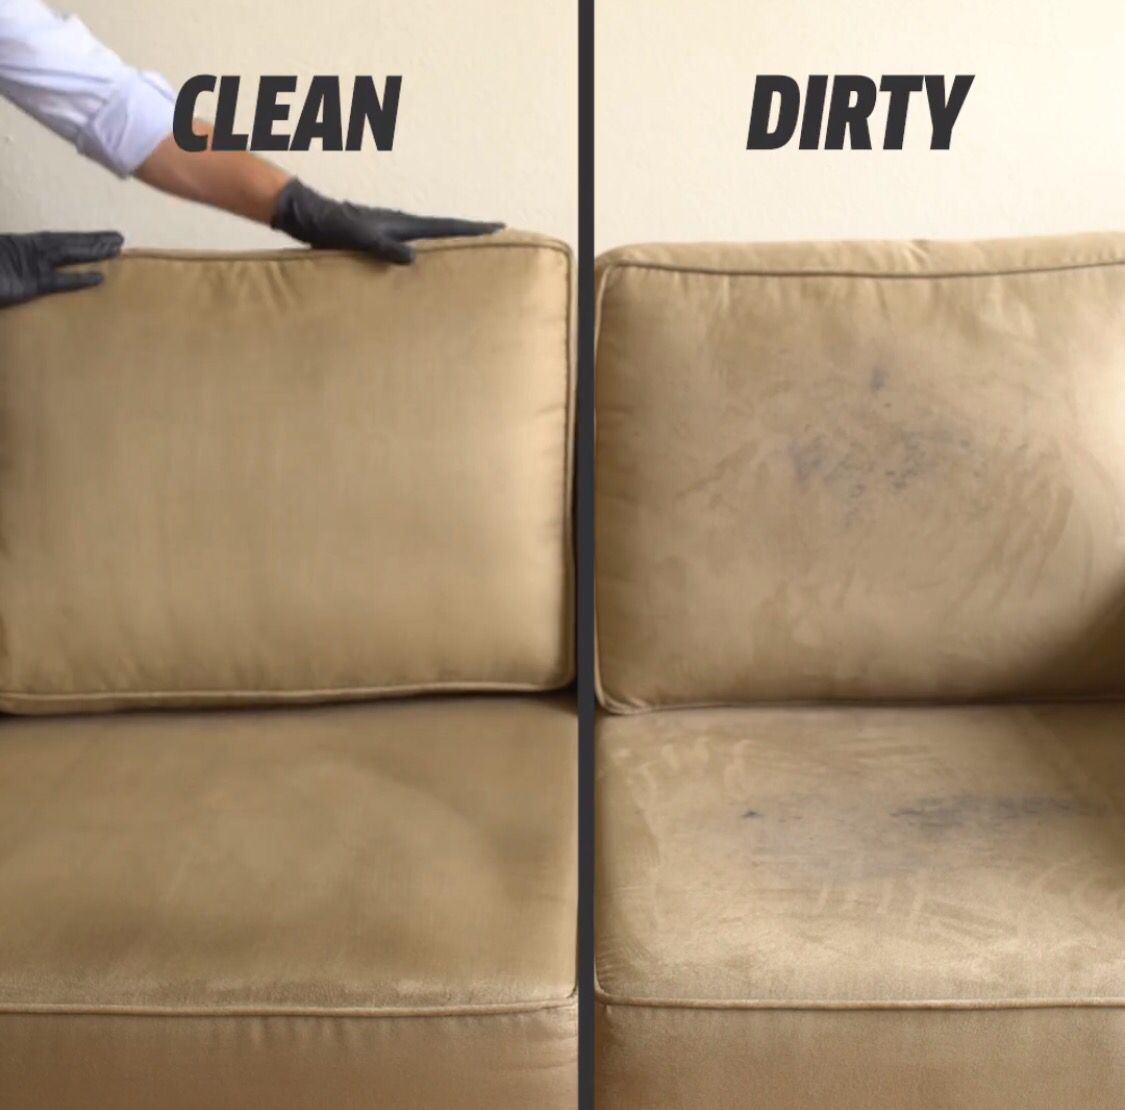 Diy Couch Cleaner 17oz Water 5oz Alcohol 3 4oz White Vinegar 1 5oz